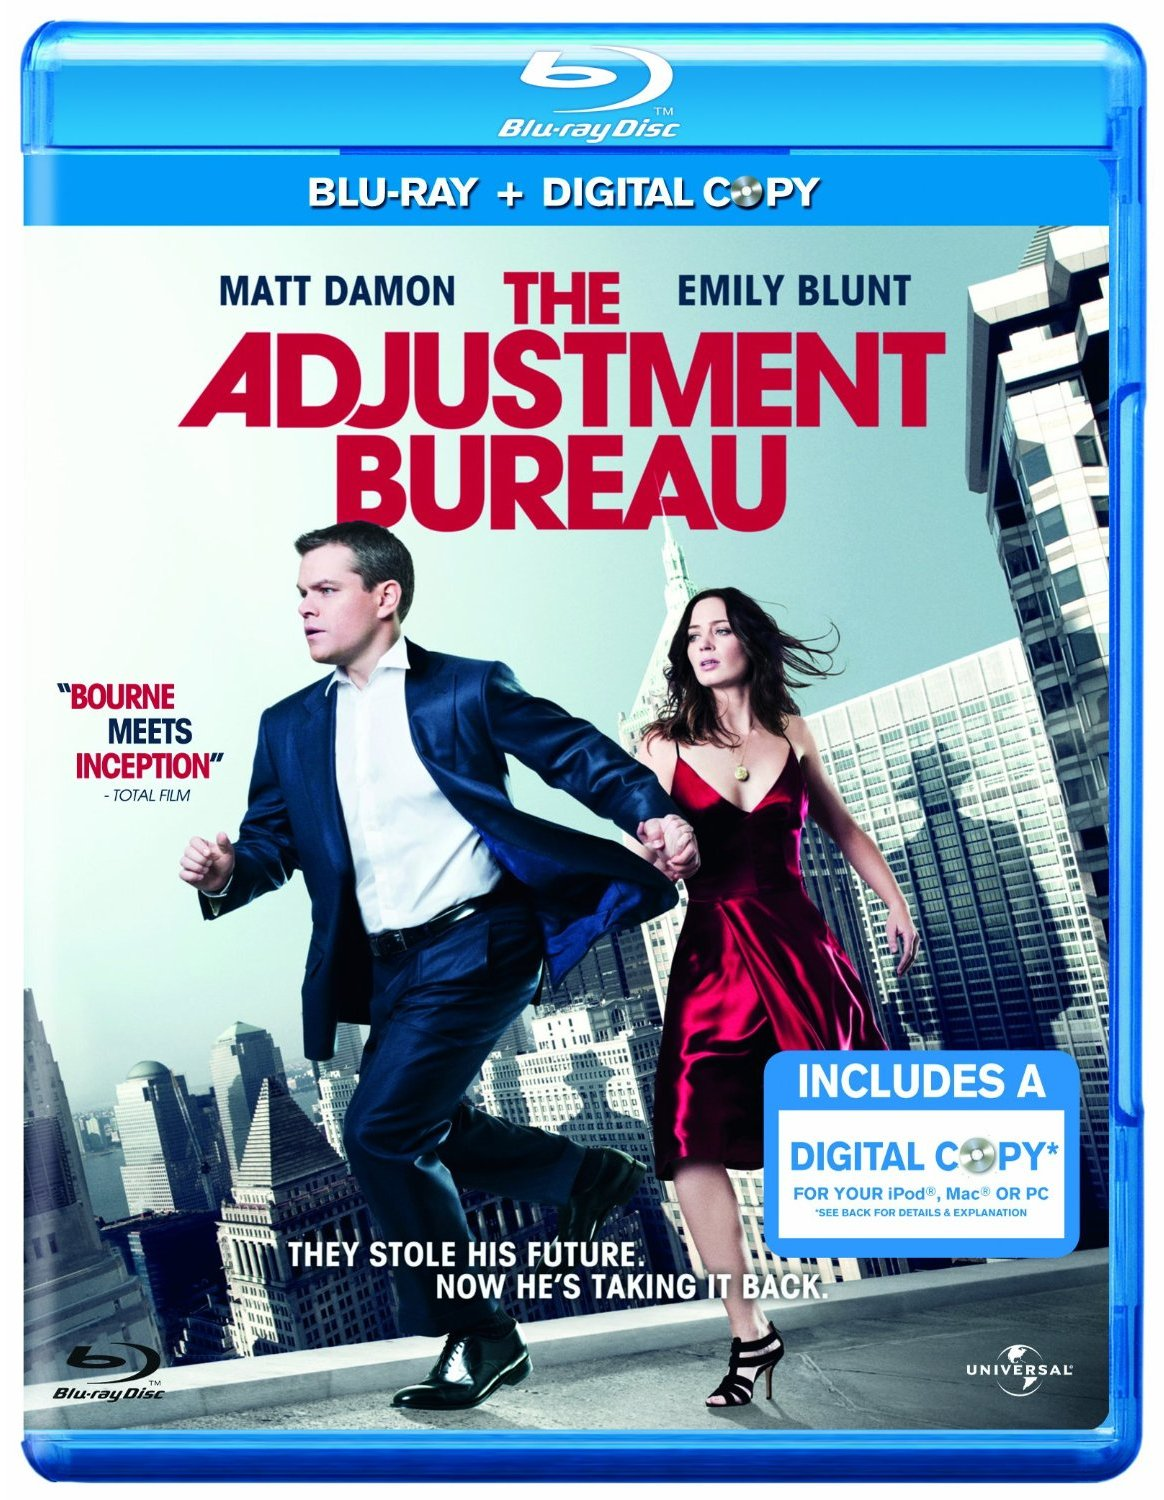 emily blunt dancing in adjustment bureau beta pics. Black Bedroom Furniture Sets. Home Design Ideas